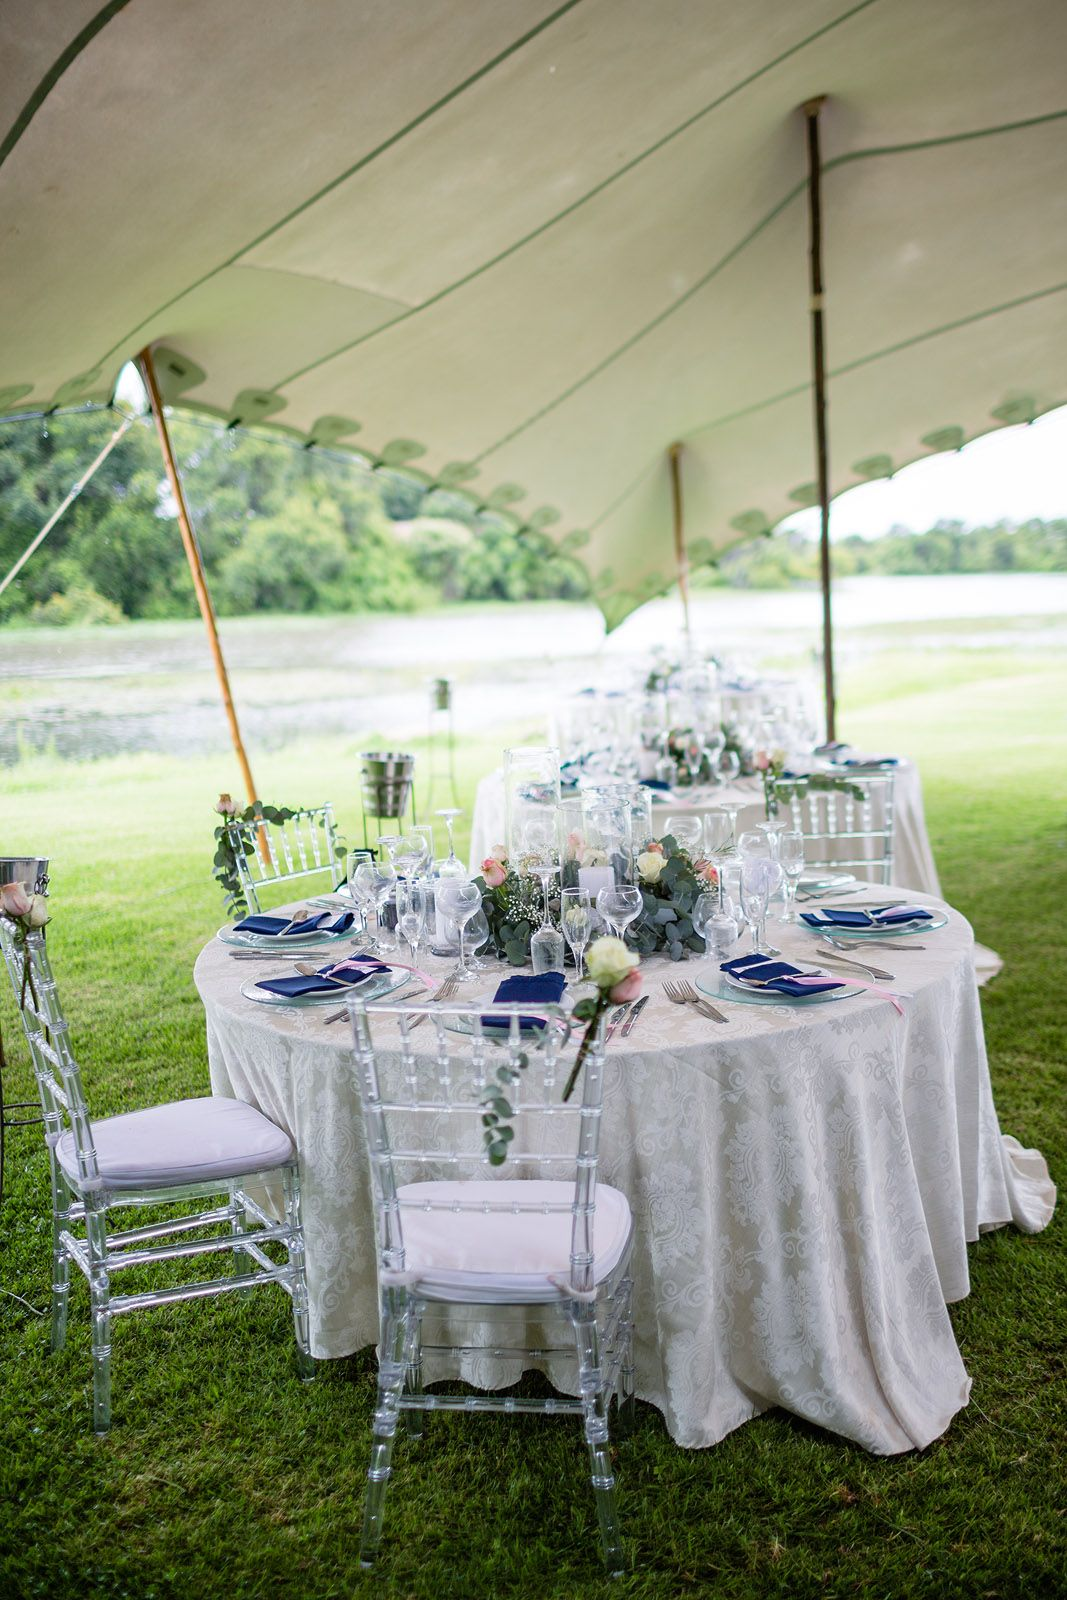 Tiffany chairs flowers candles and decoration at our wedding in tiffany chairs flowers candles and decoration at our wedding in zimbabwe 31 dec 14 photo howling moon tessandgarth junglespirit Choice Image